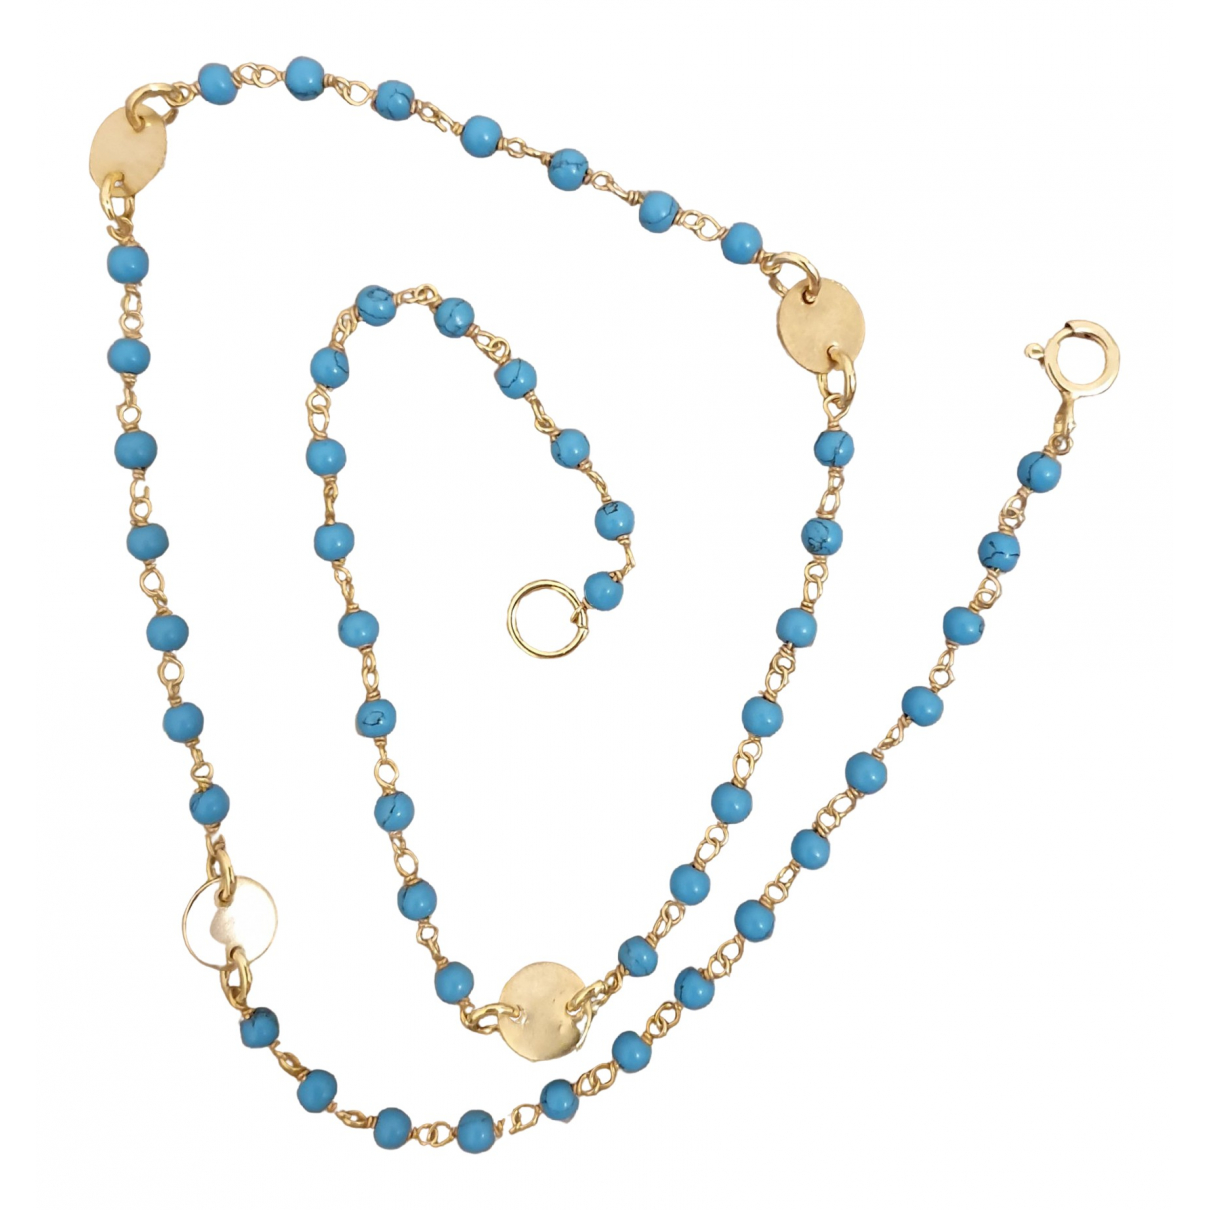 Liv Oliver \N Blue Pearls necklace for Women \N